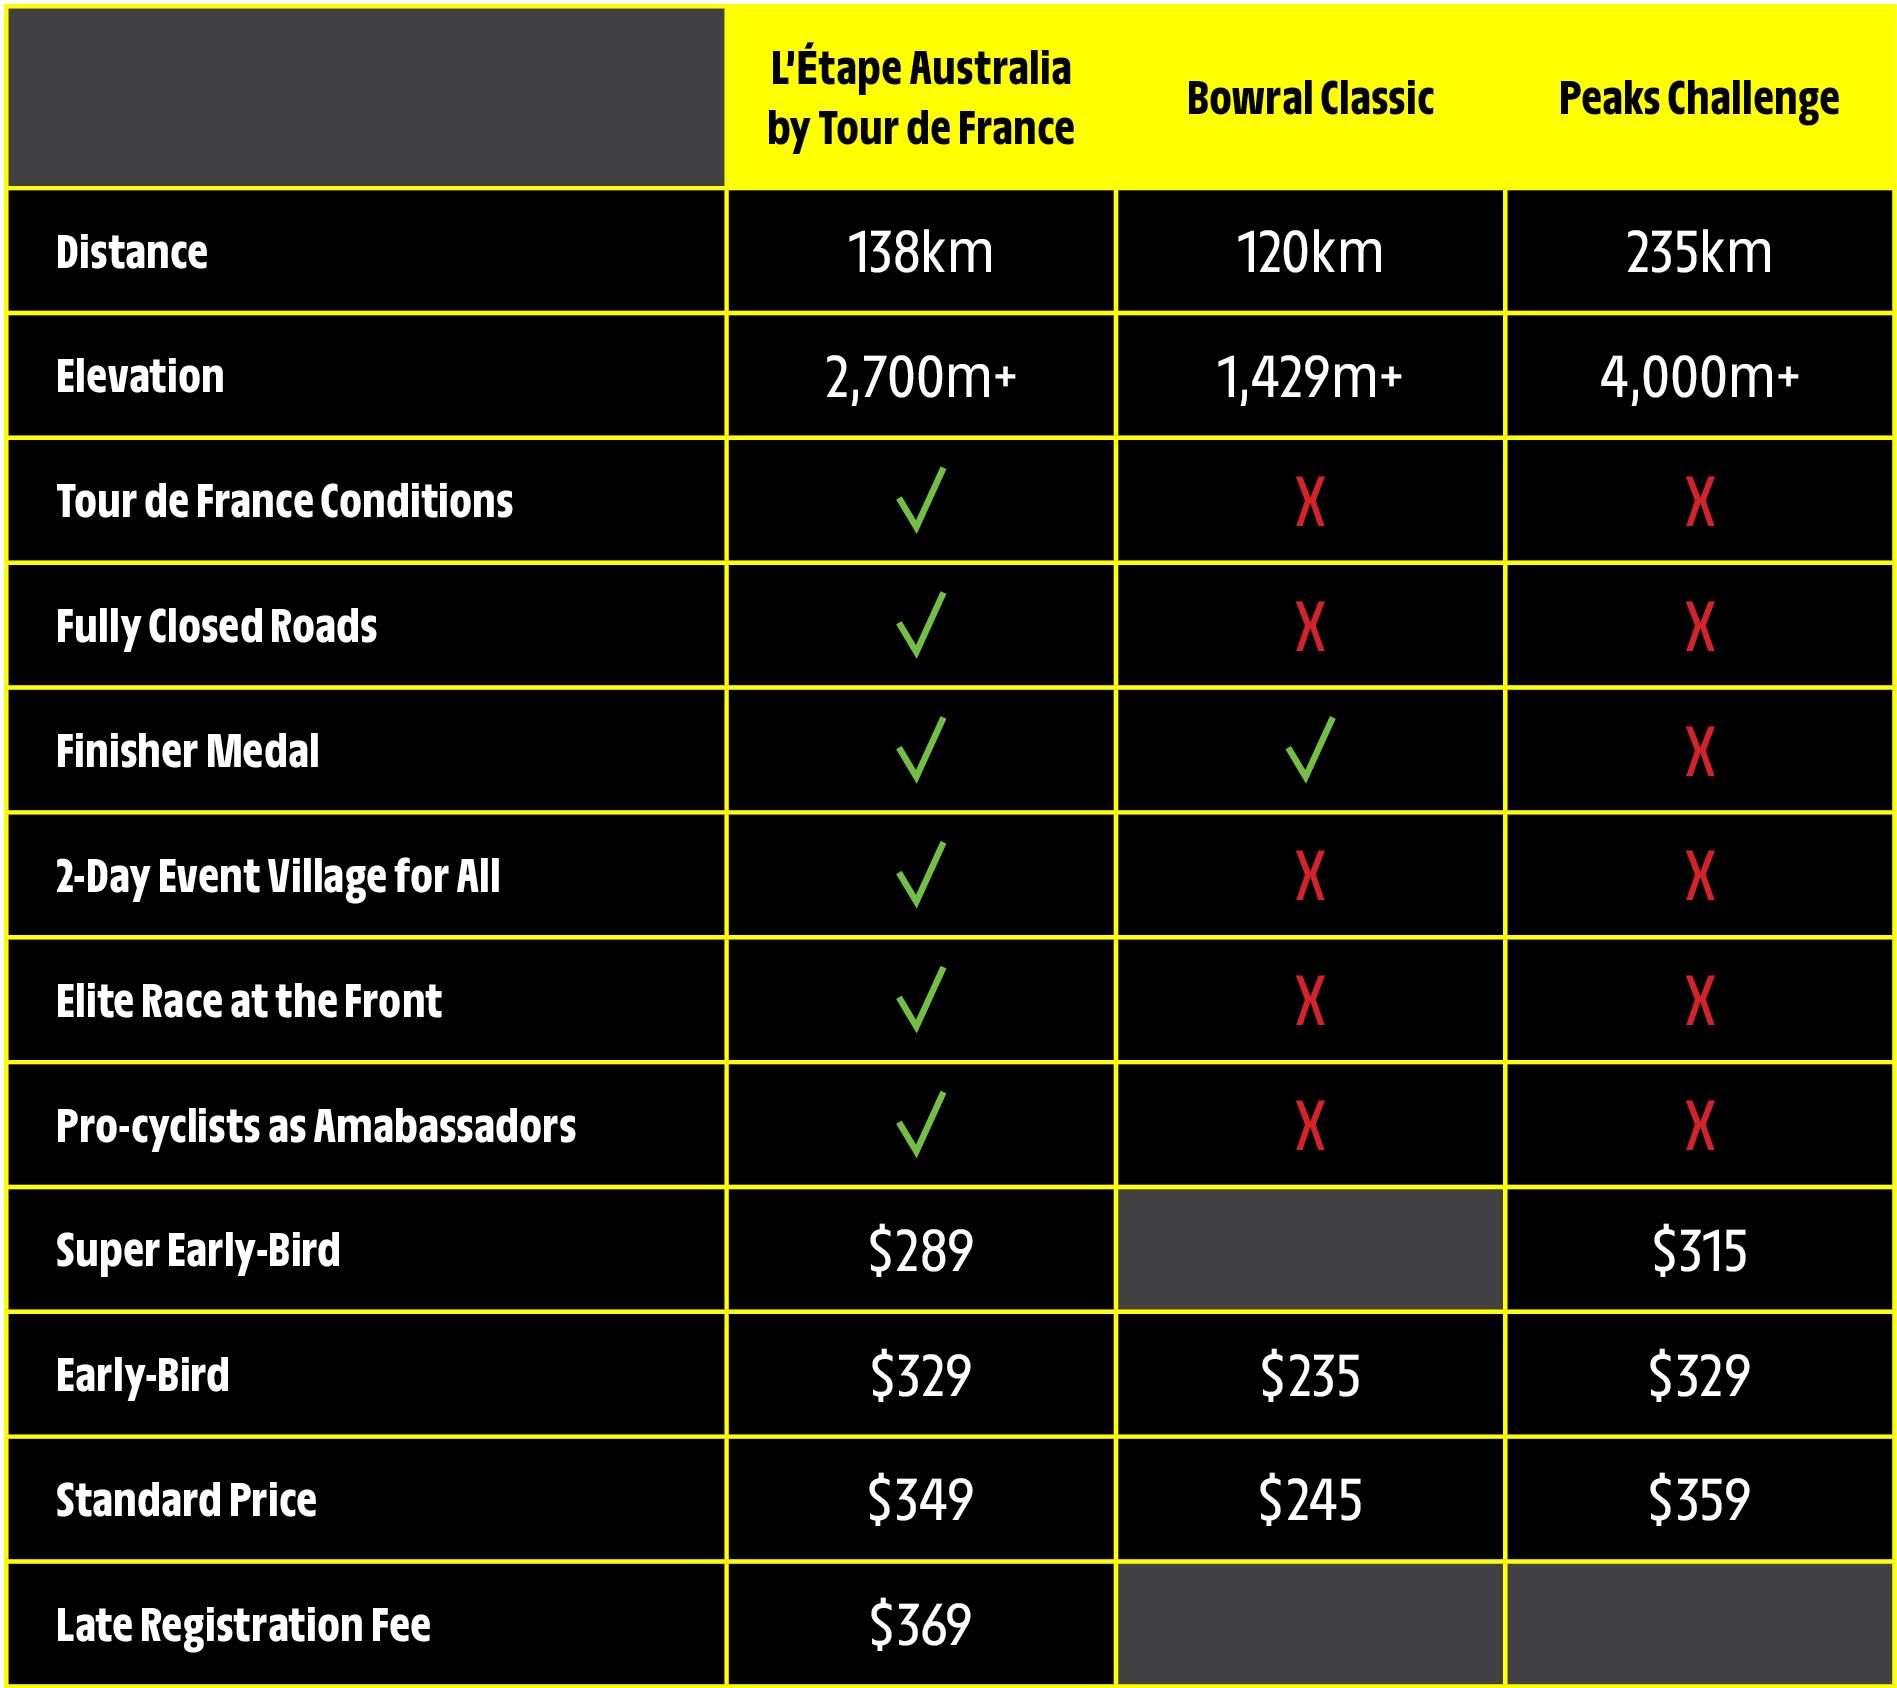 L'Étape Australia Pricing Comparison